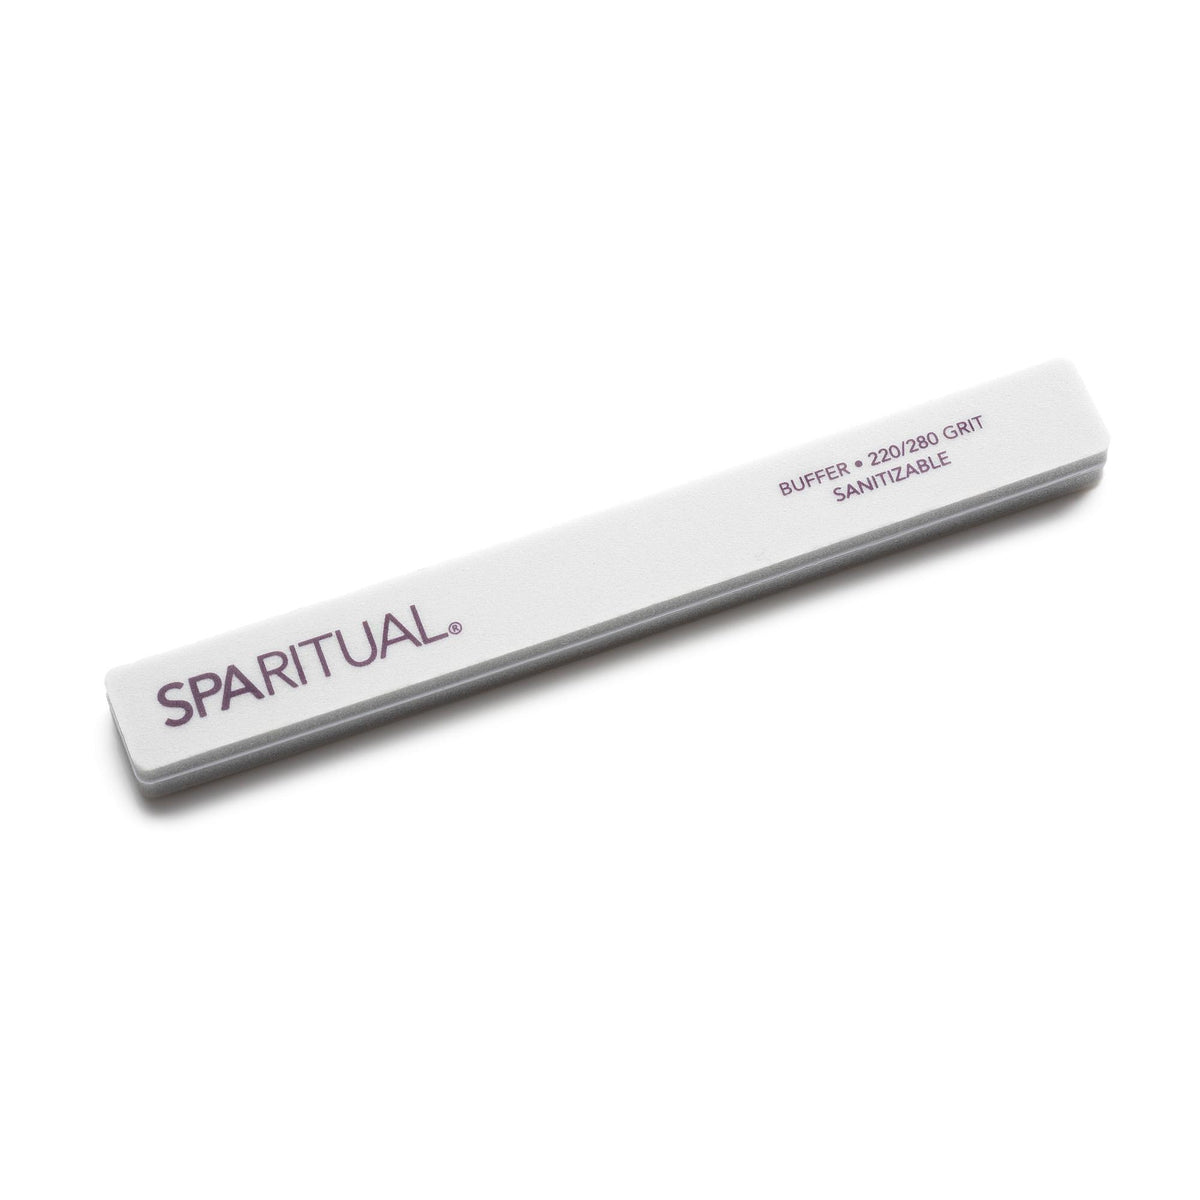 SpaRitual Sanitizable Buffer / 220/280 Grit